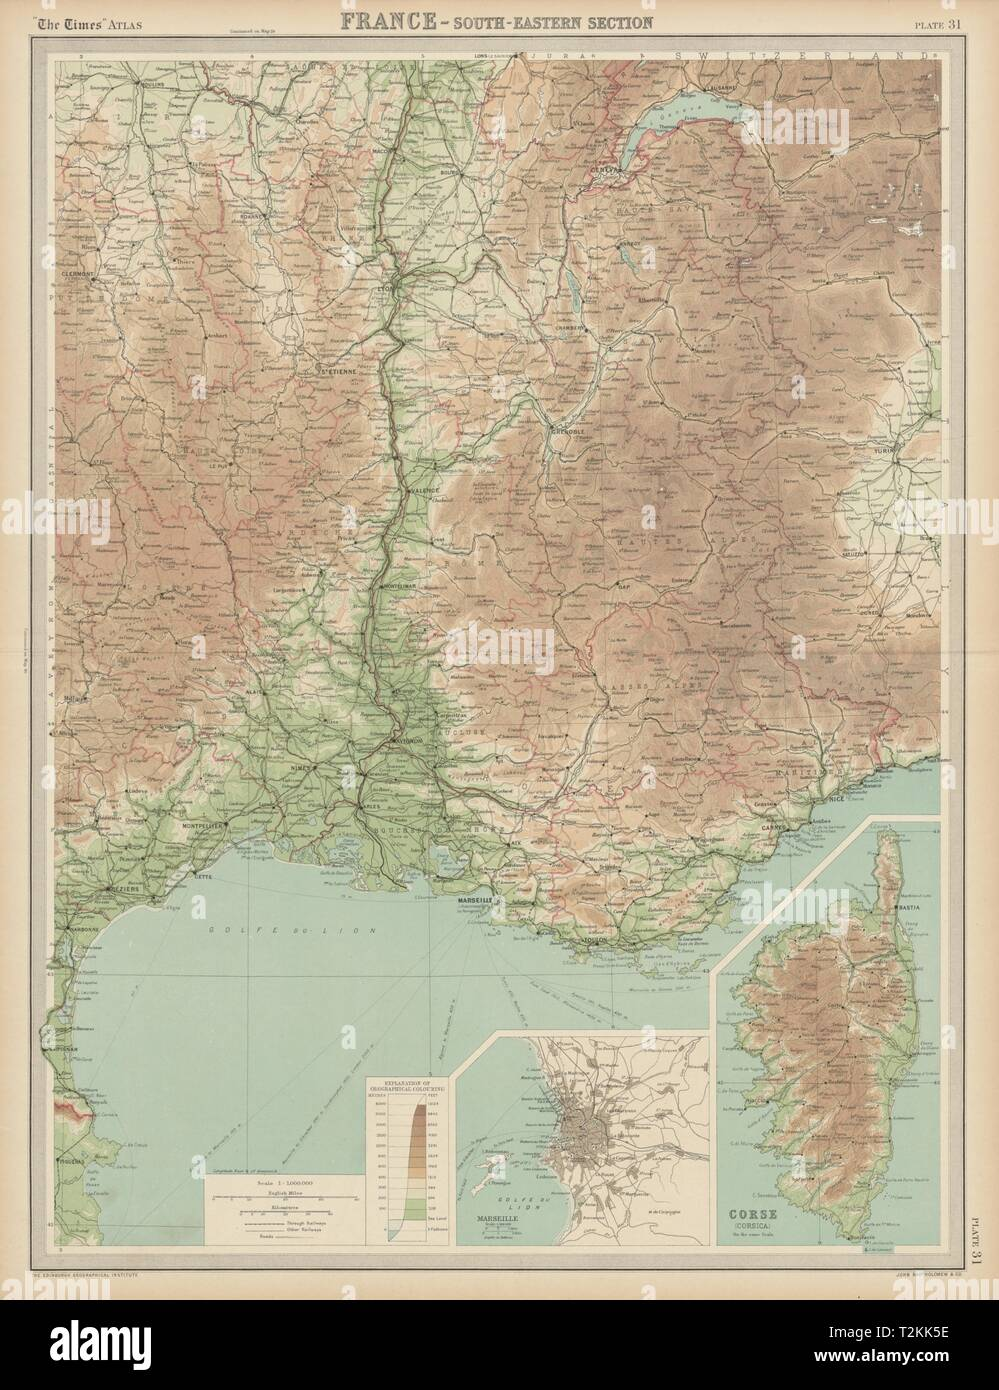 Map Of South East France.South East France Provence Rhone Alpes Languedoc Marseille The